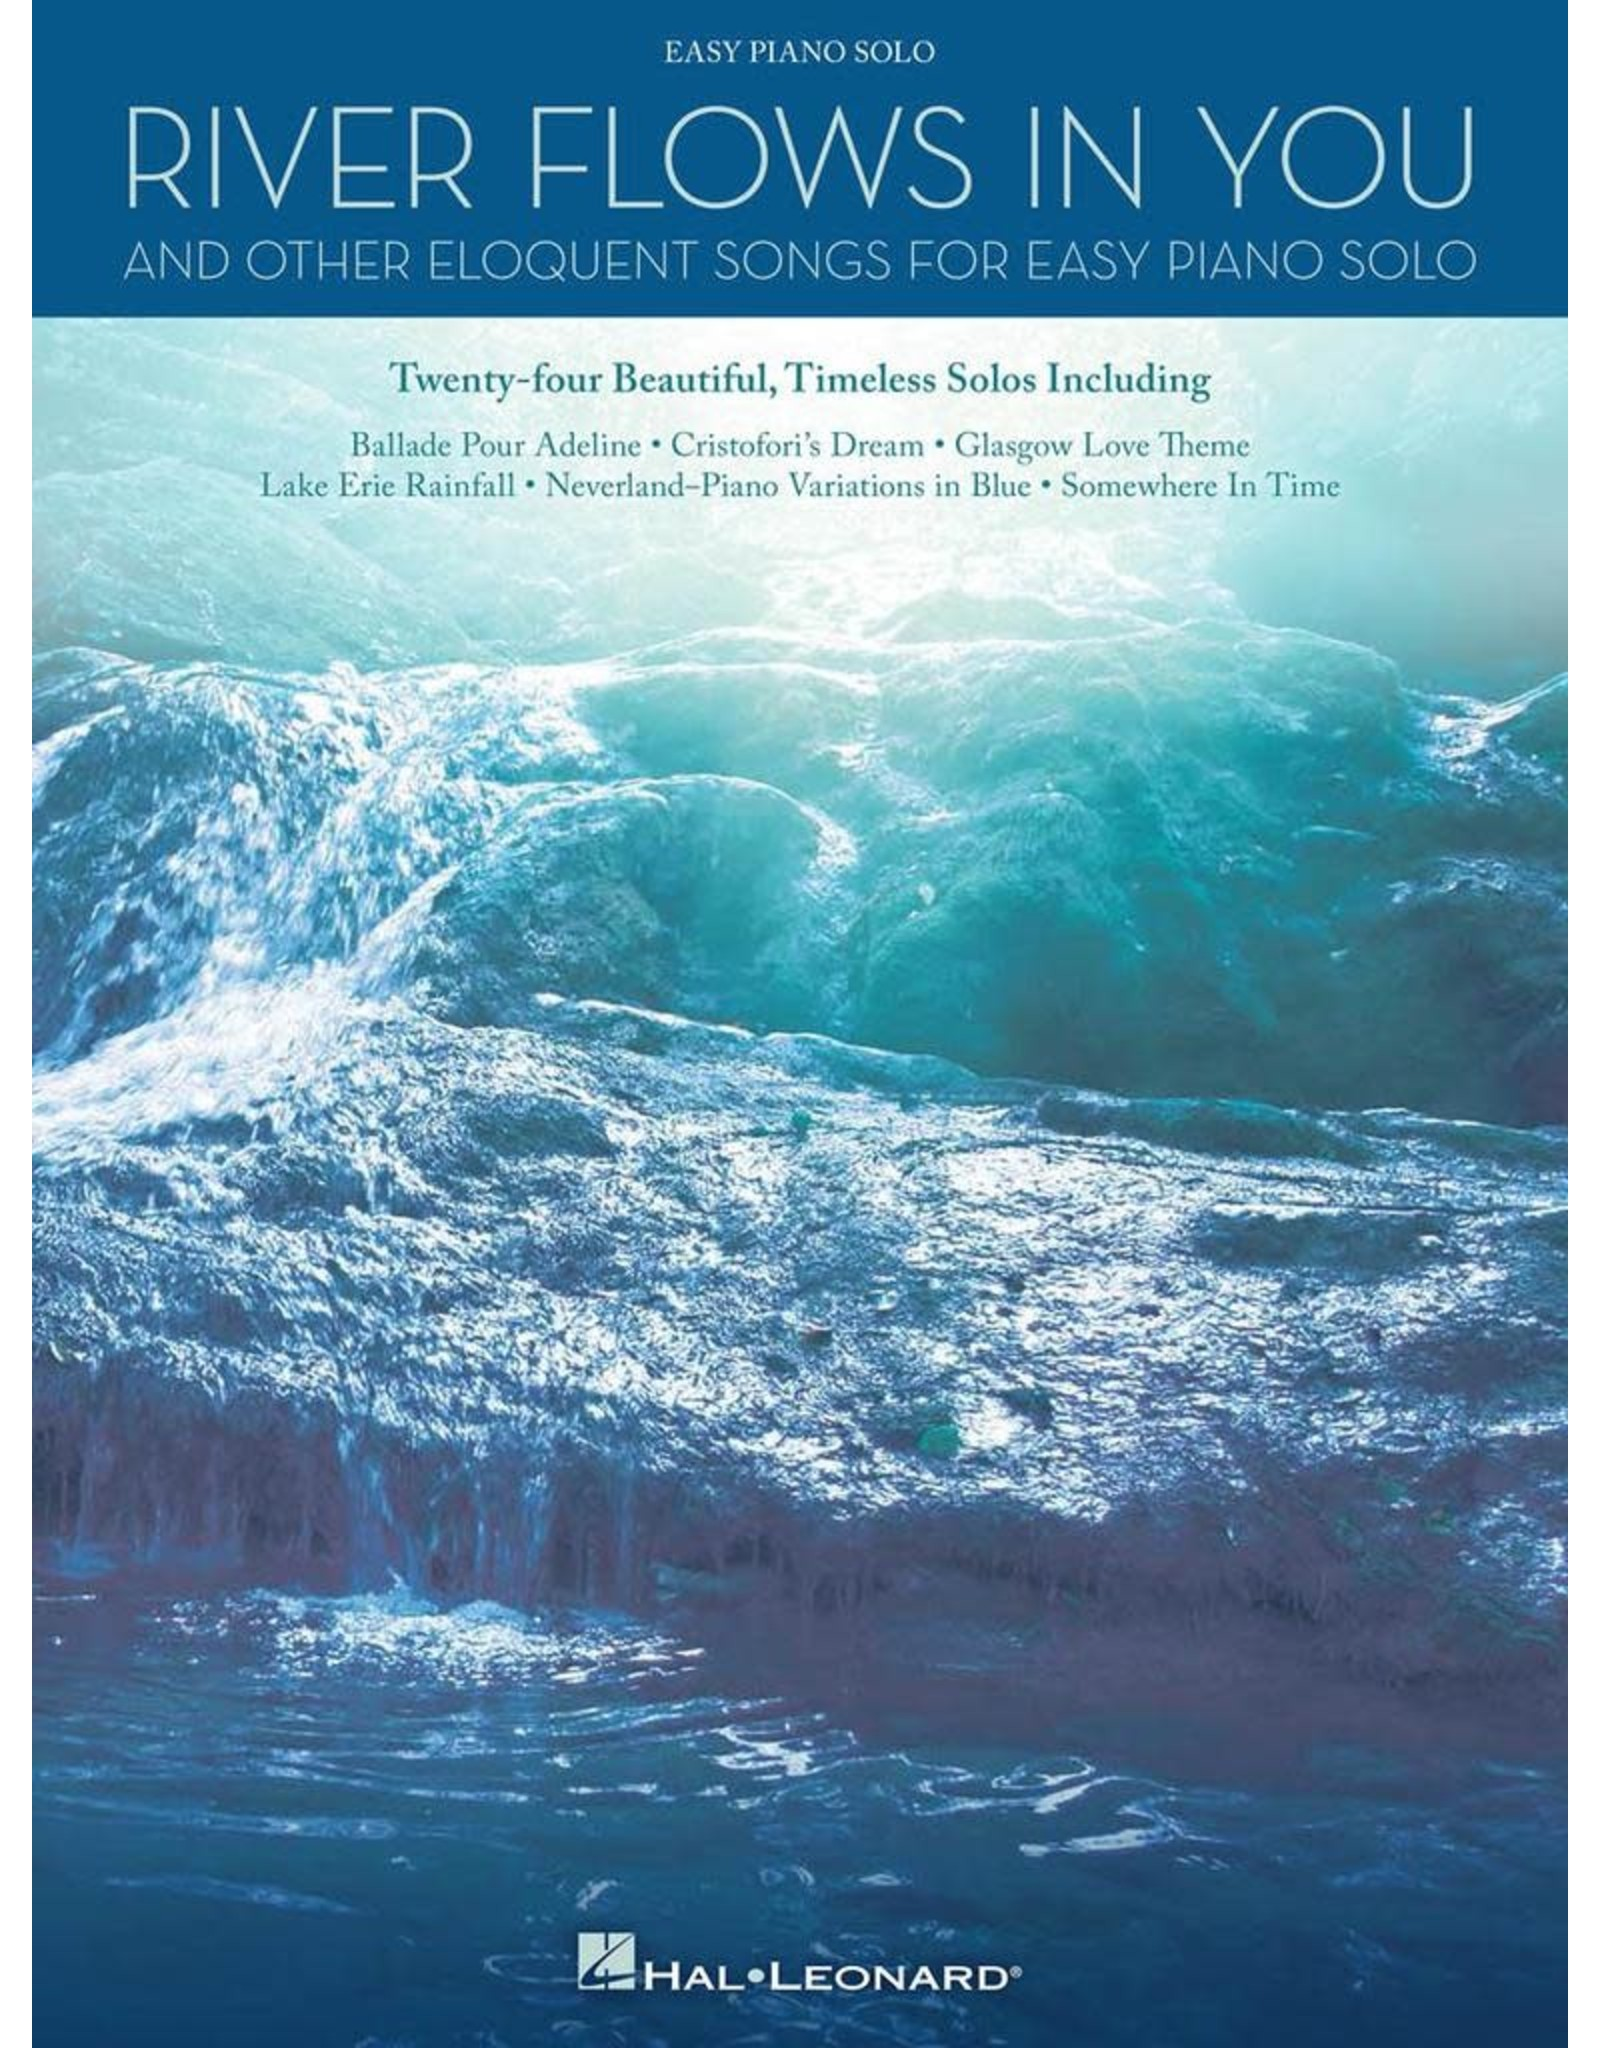 Hal Leonard River Flows in You and Other Eloquent Songs for Easy Piano Solo